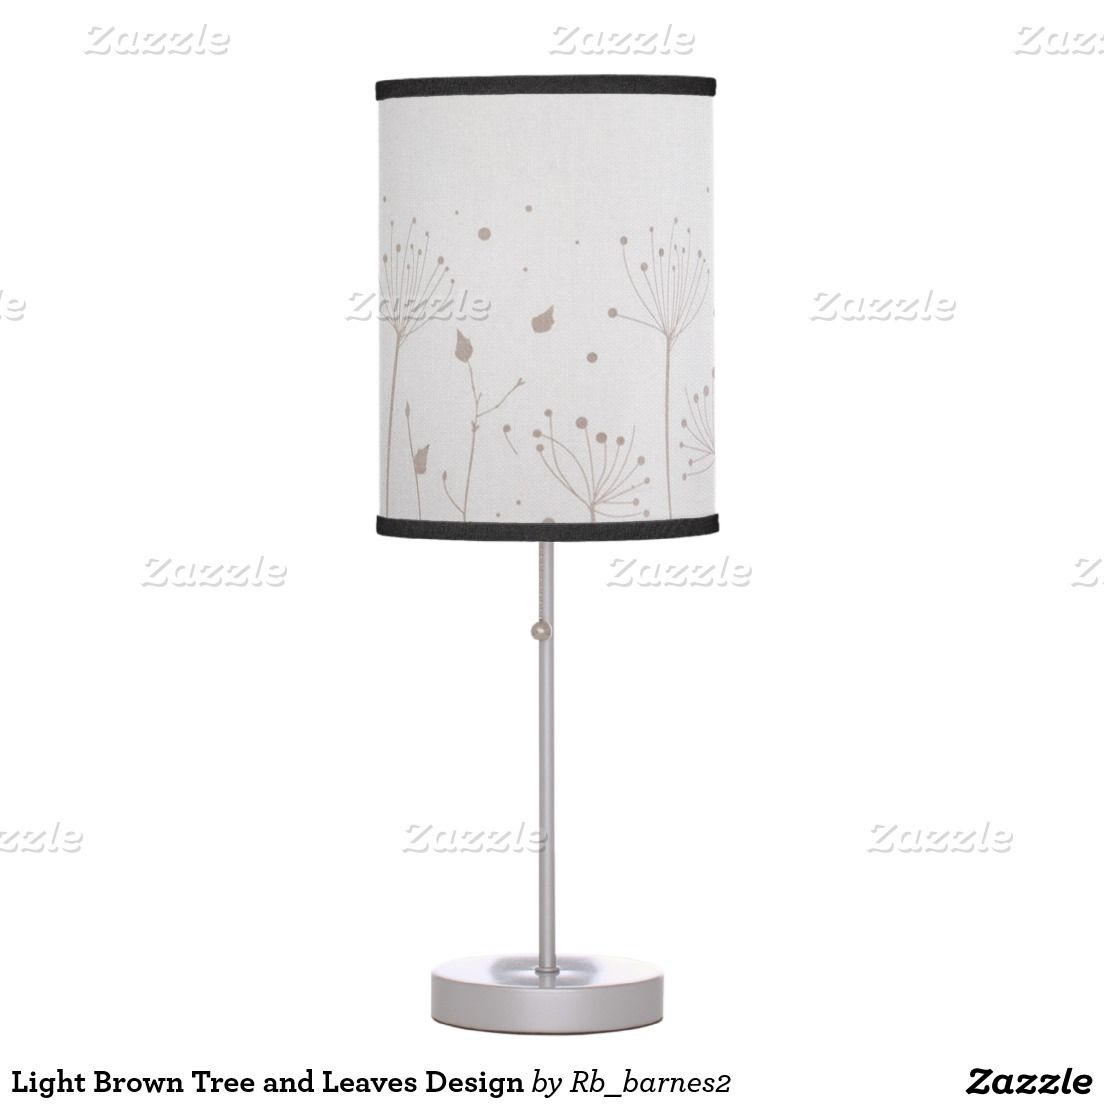 Light Brown Tree and Leaves Design Desk Lamps